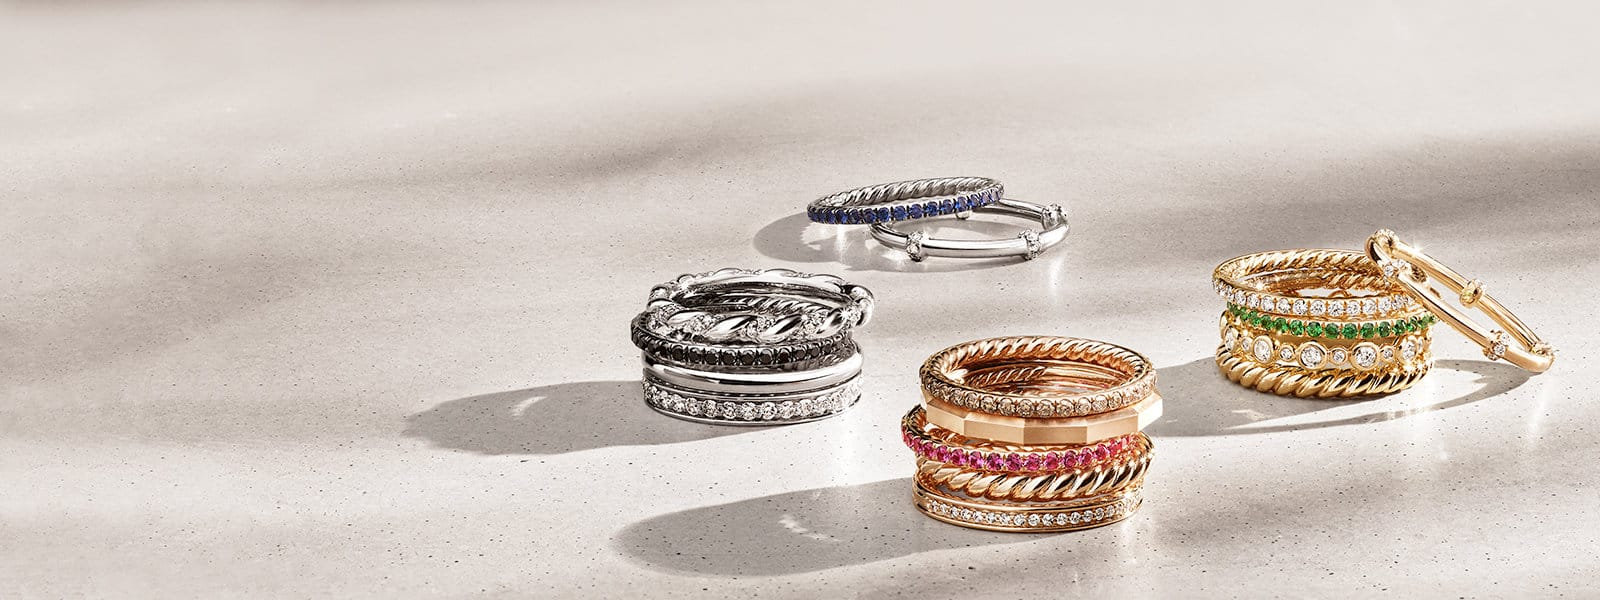 Four stacks of David Yurman band rings in 18K white, yellow or rose gold with colored gemstones casting long shadows on a beige stone surface.